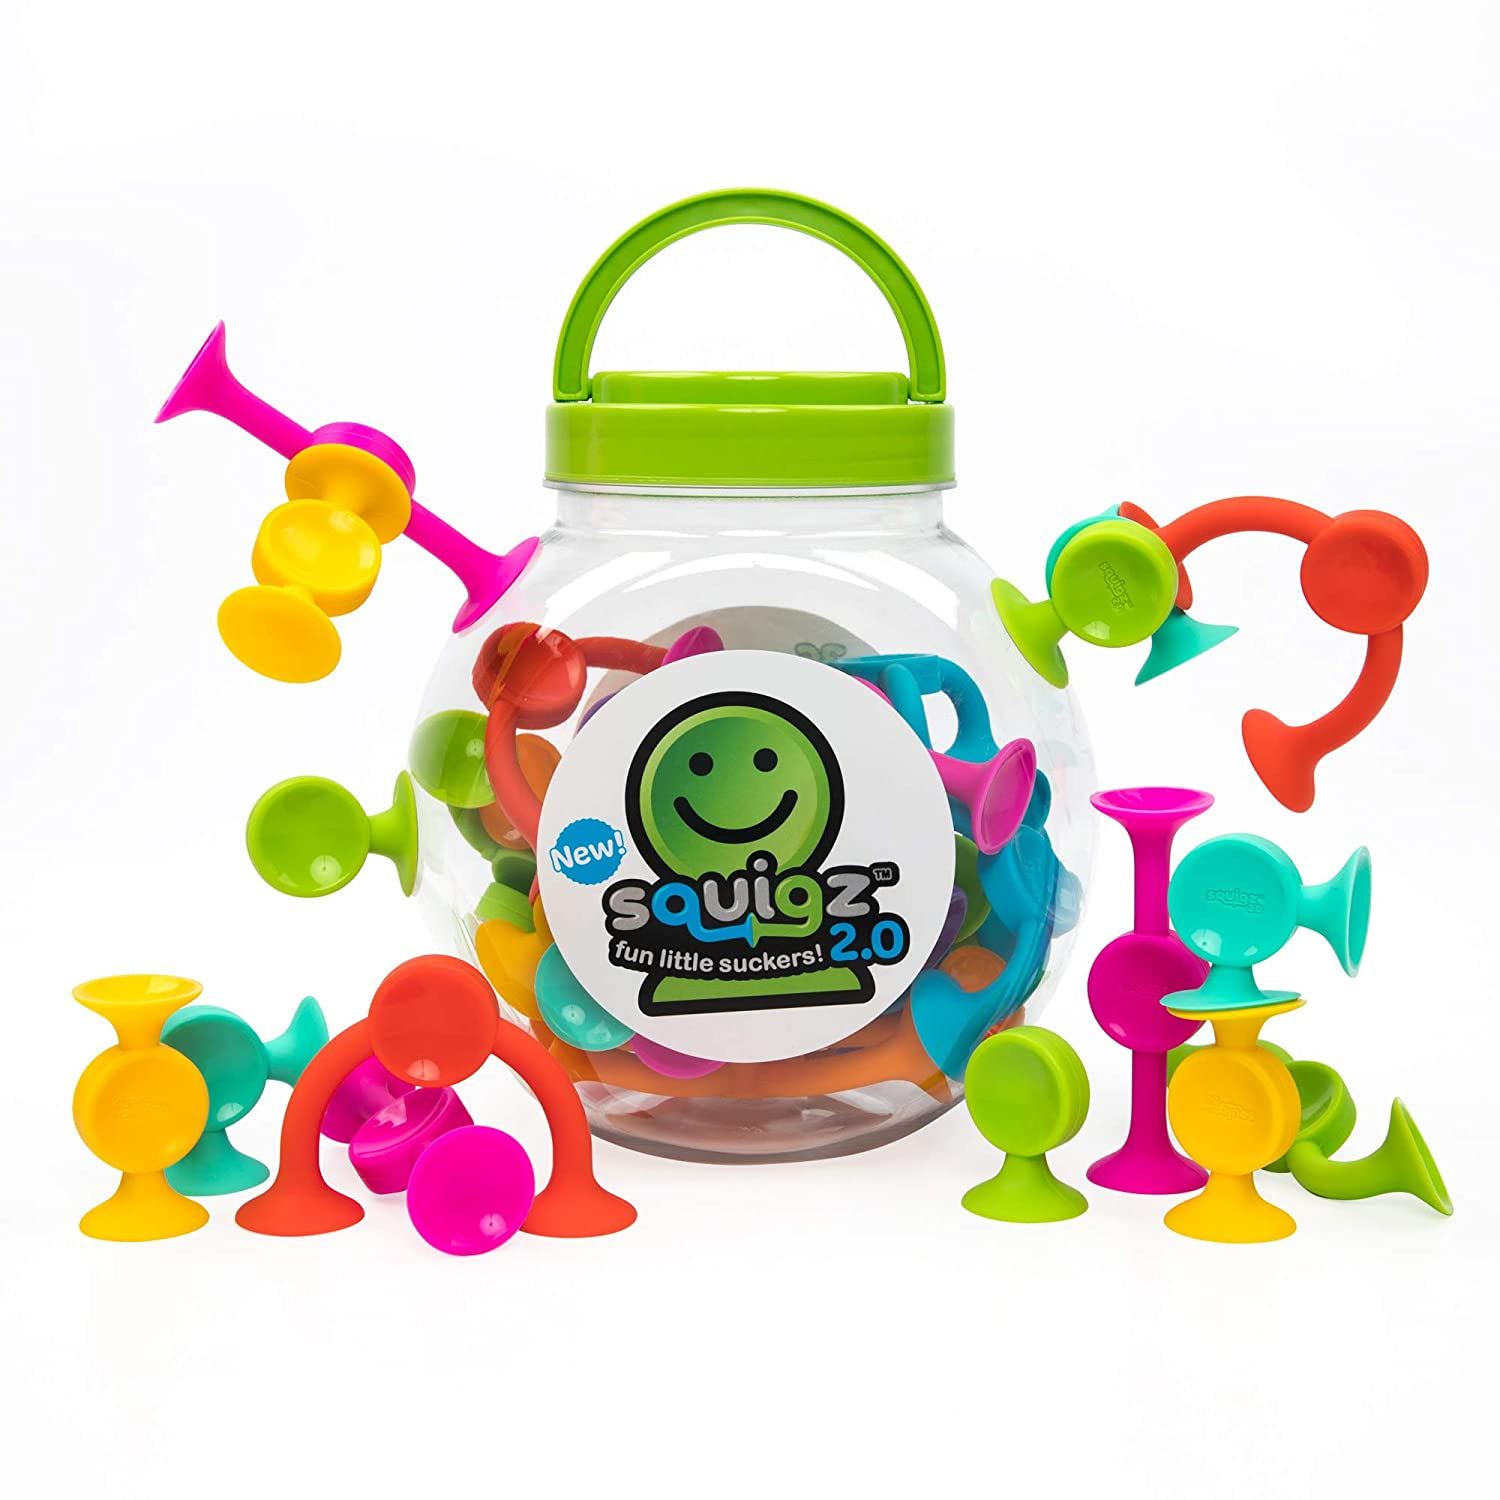 The Fat Brain Toys Squigz travel product recommended by Molly Callister on Lifney.